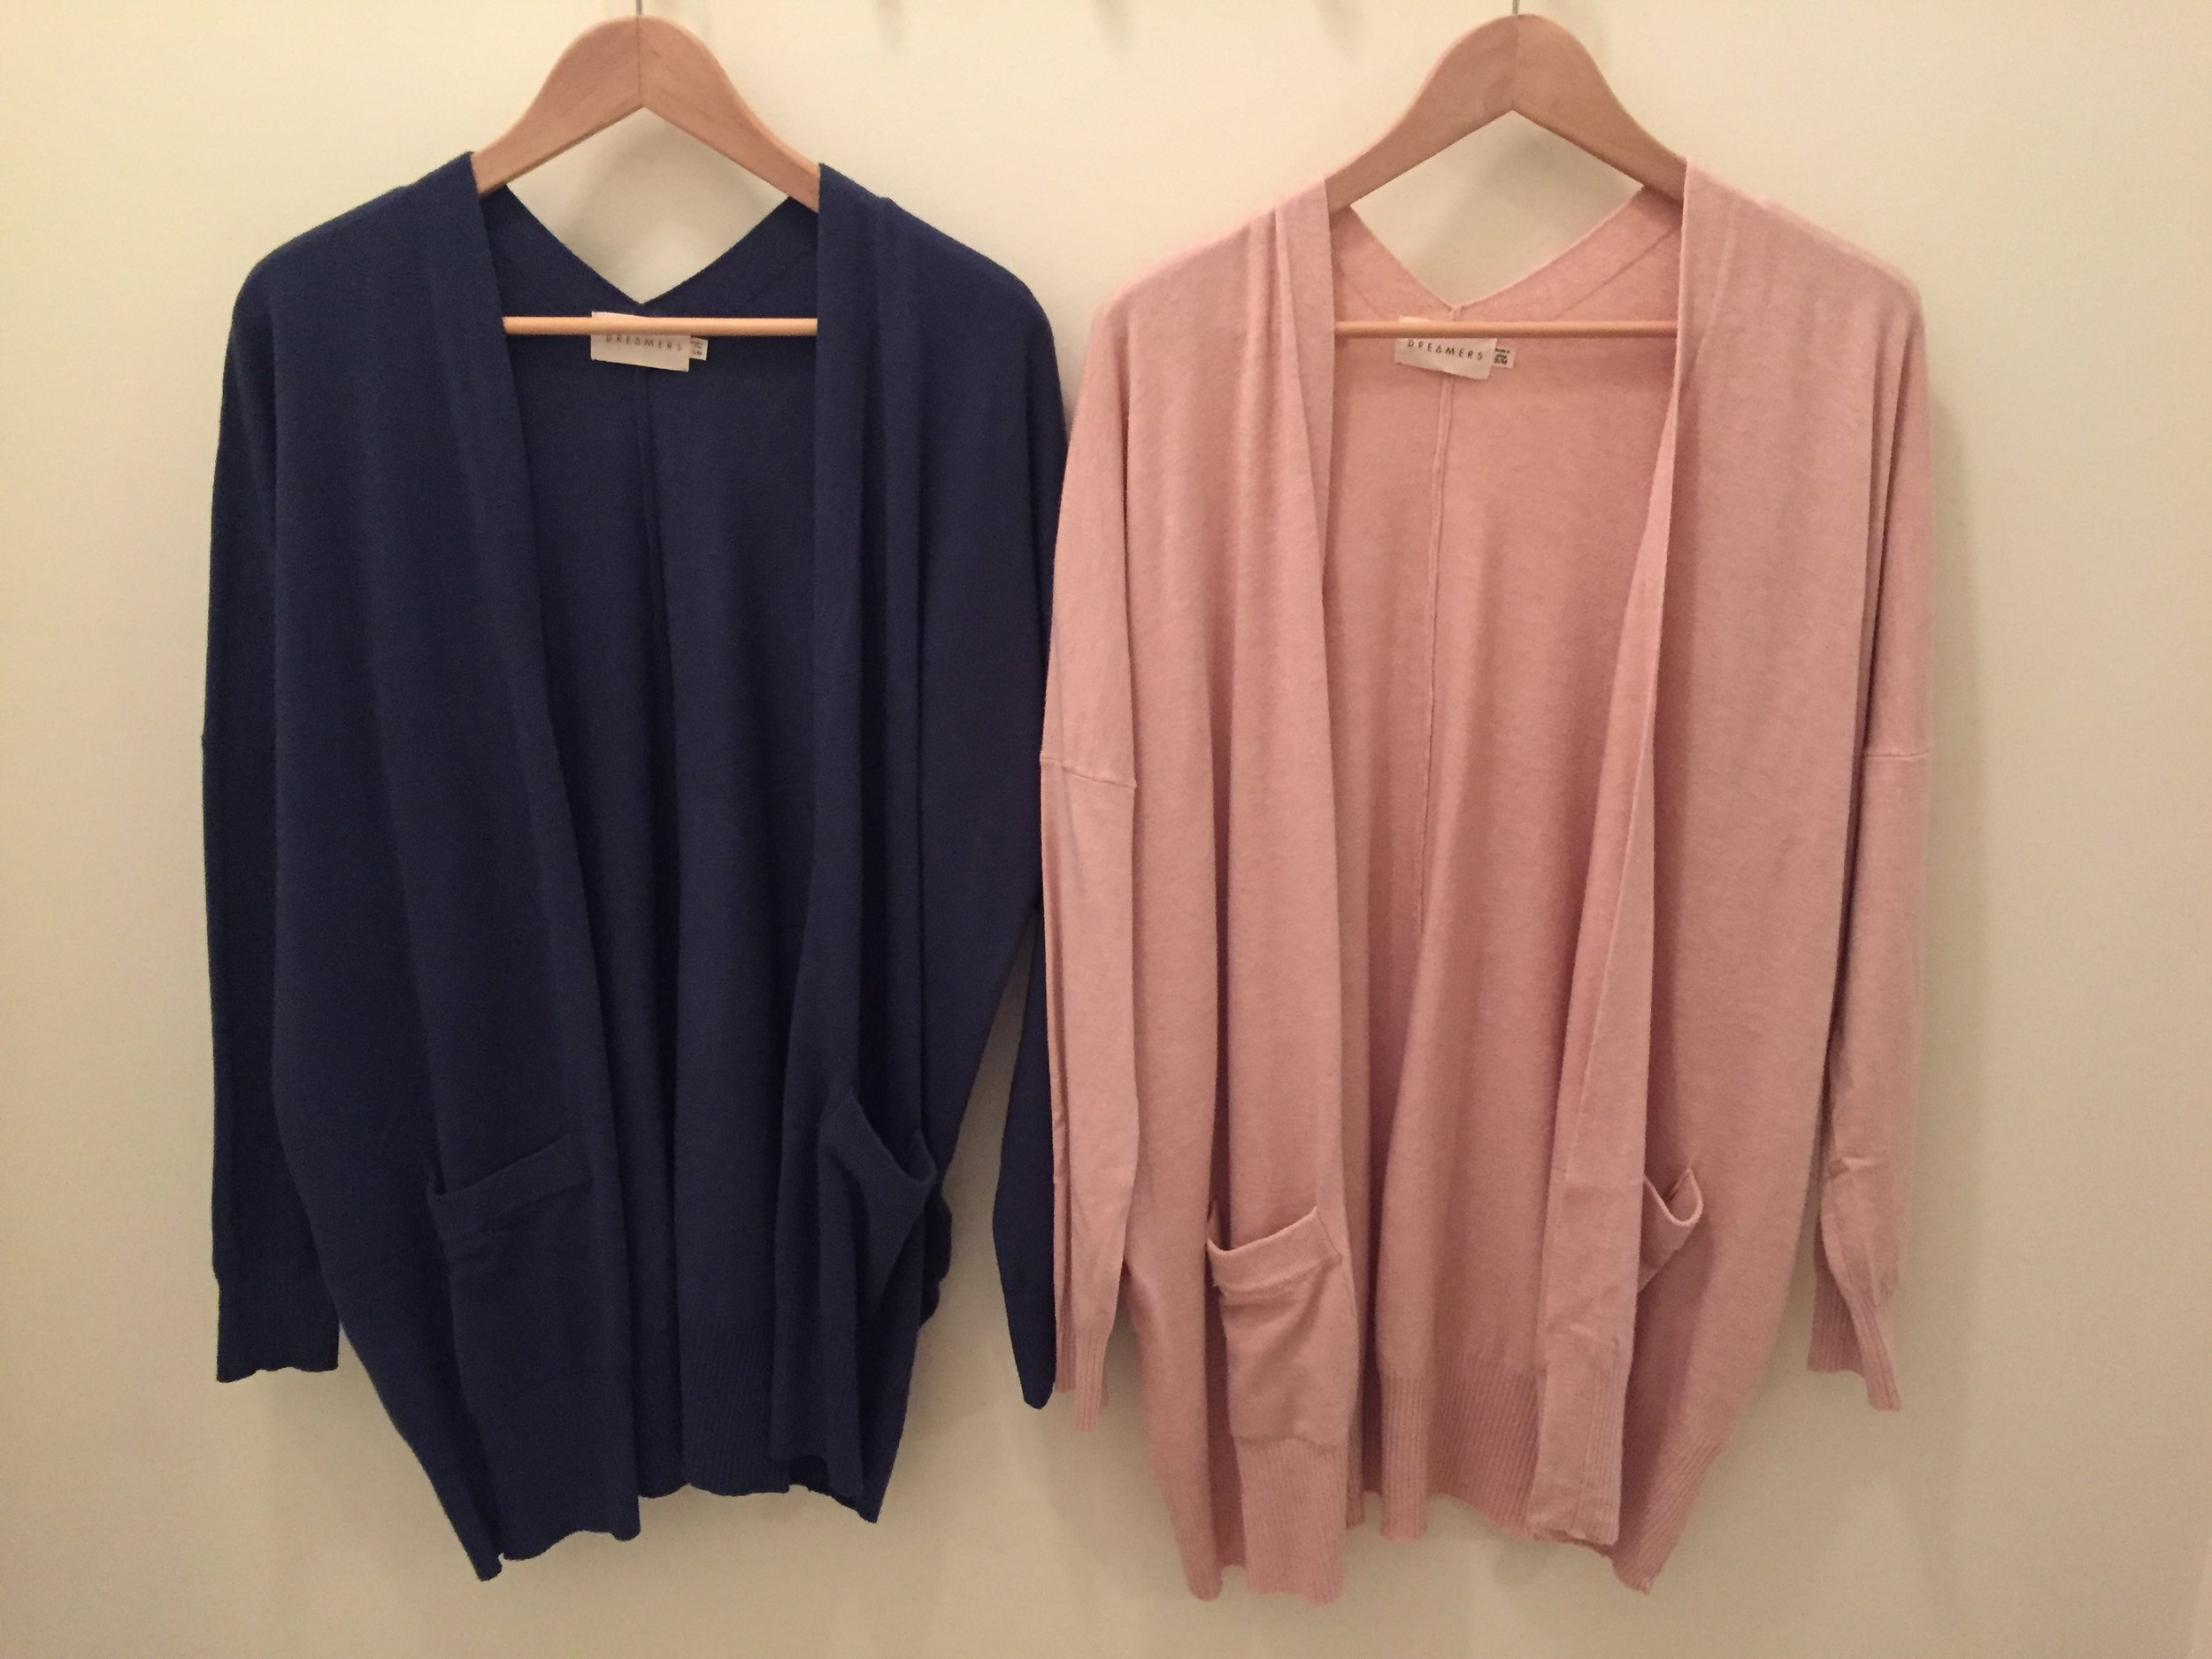 Dreamers Cardigan $45 (Blush and Blue)